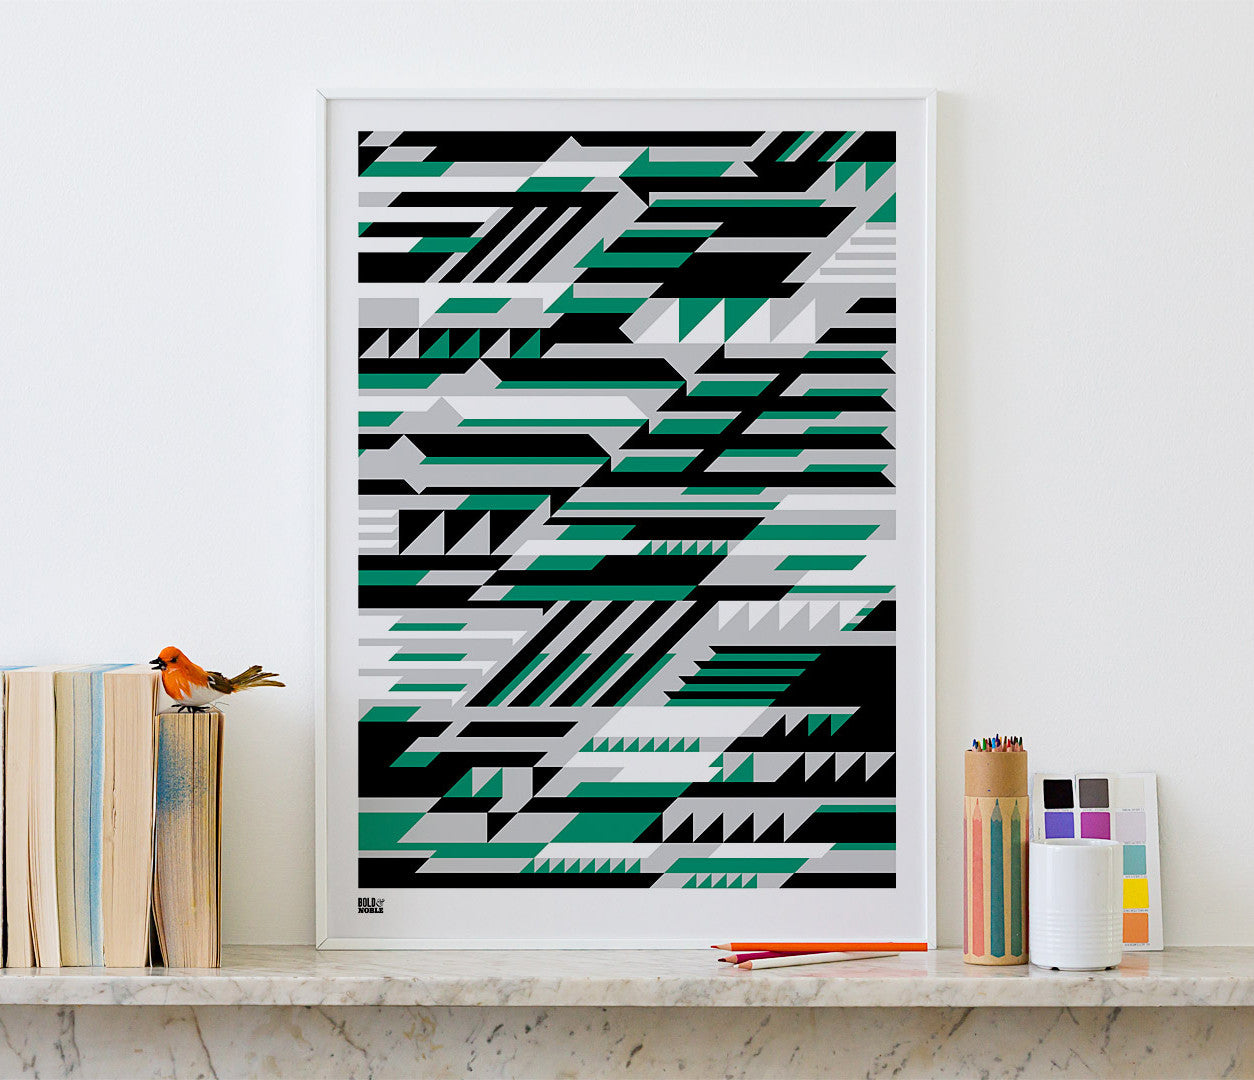 'Faster' Geometric Art Print in Emerald Green